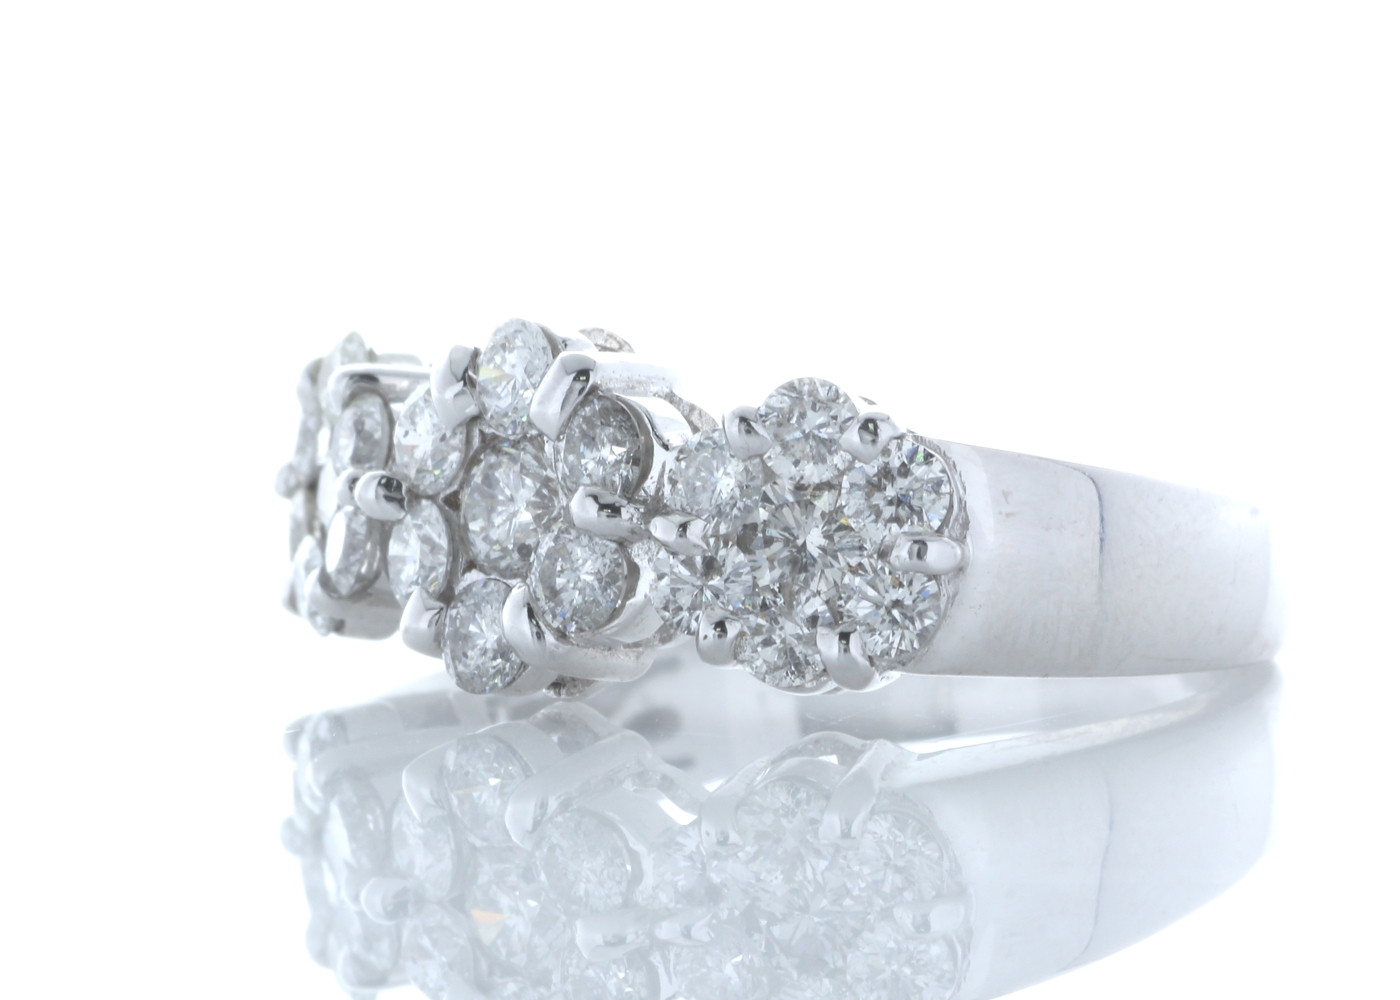 18ct White Gold Flower Cluster Diamond Ring 1.50 Carats - Image 2 of 5